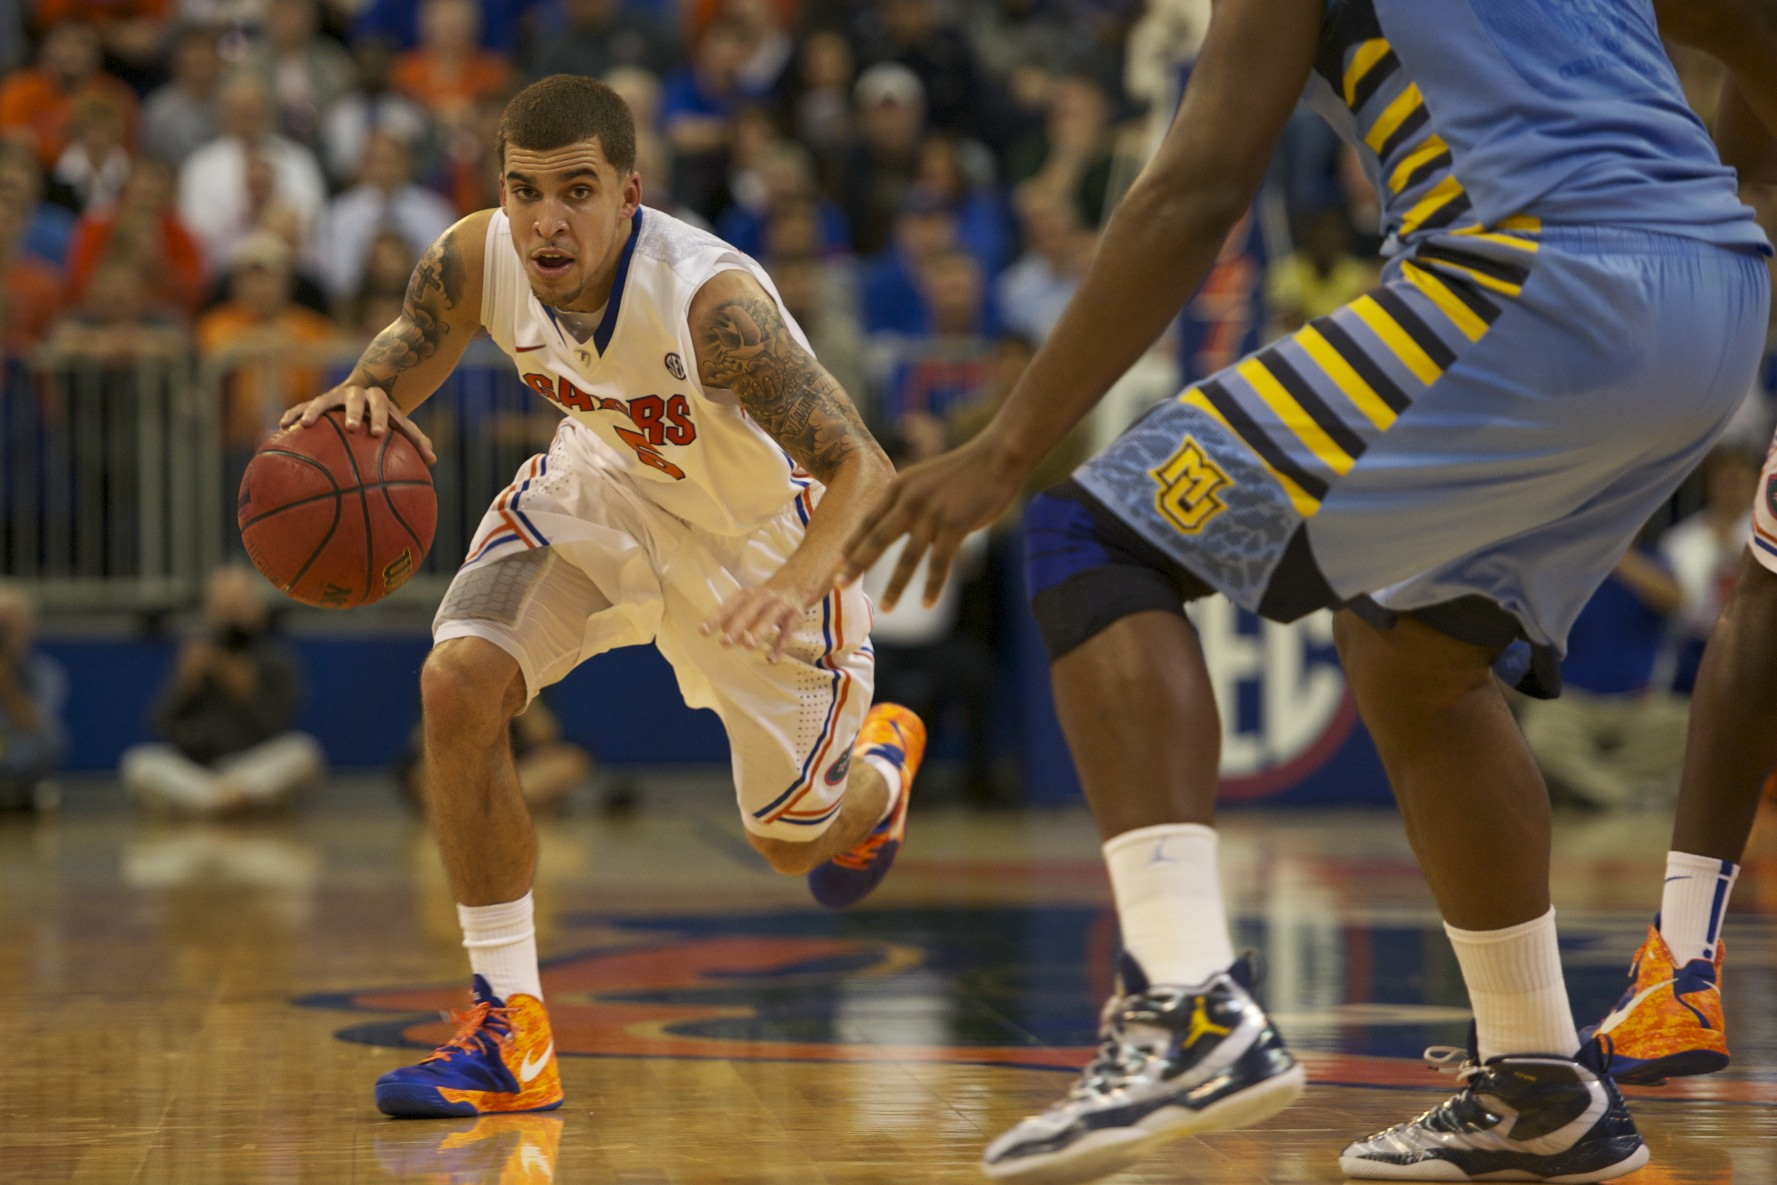 Scottie Wilbekin had 4 points and 2 rebounds for the Gators Thursday night.